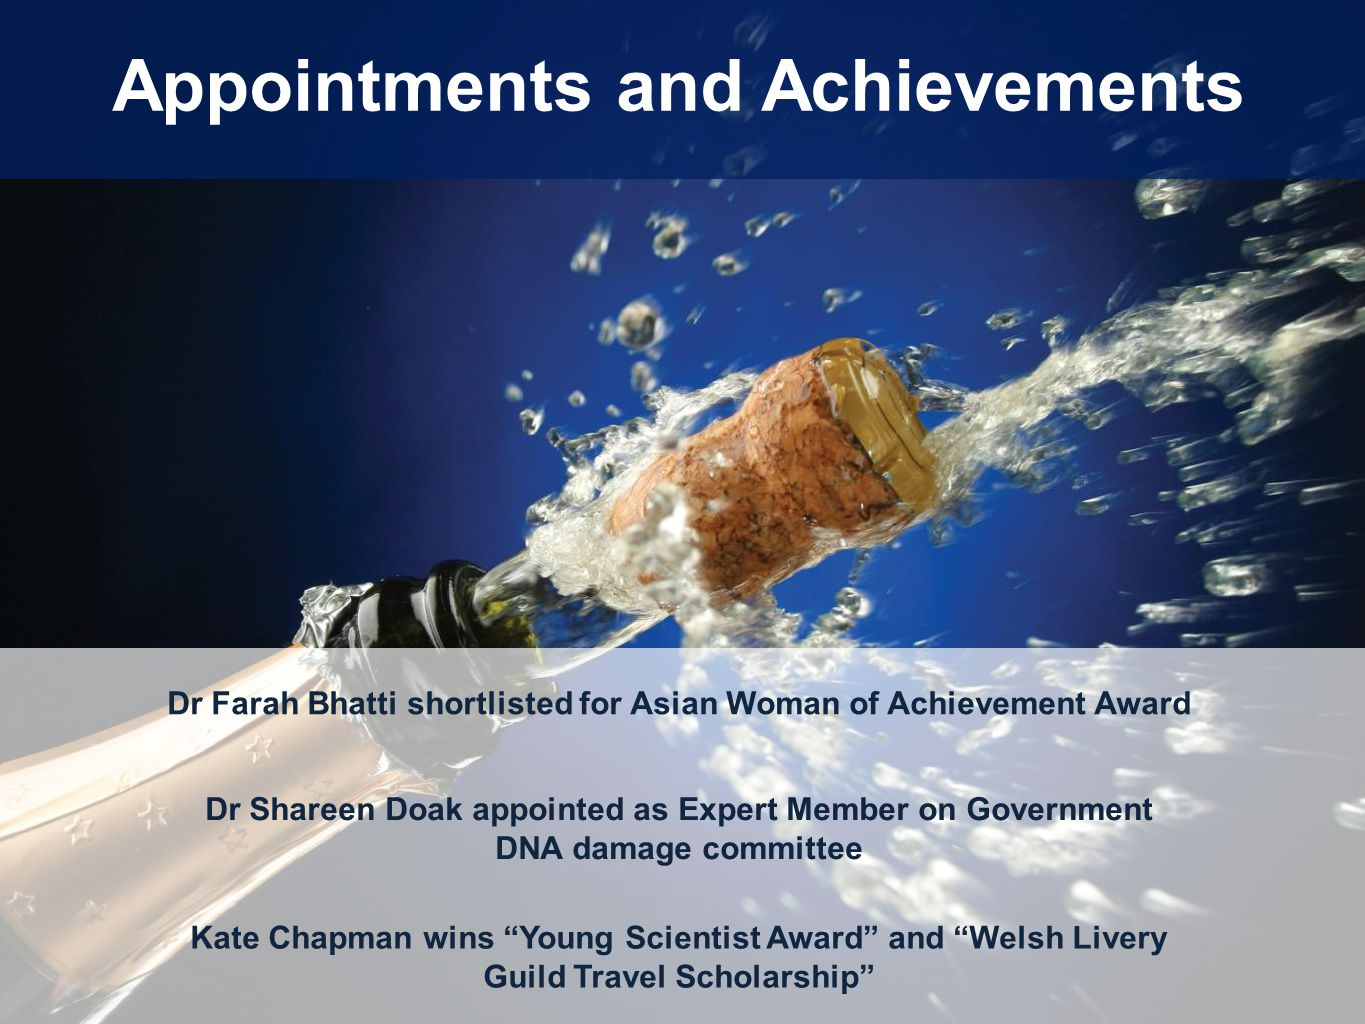 Appointments and Achievements Dr Farah Bhatti shortlisted for Asian Woman of Achievement Award Dr Shareen Doak appointed as Expert Member on Governmen